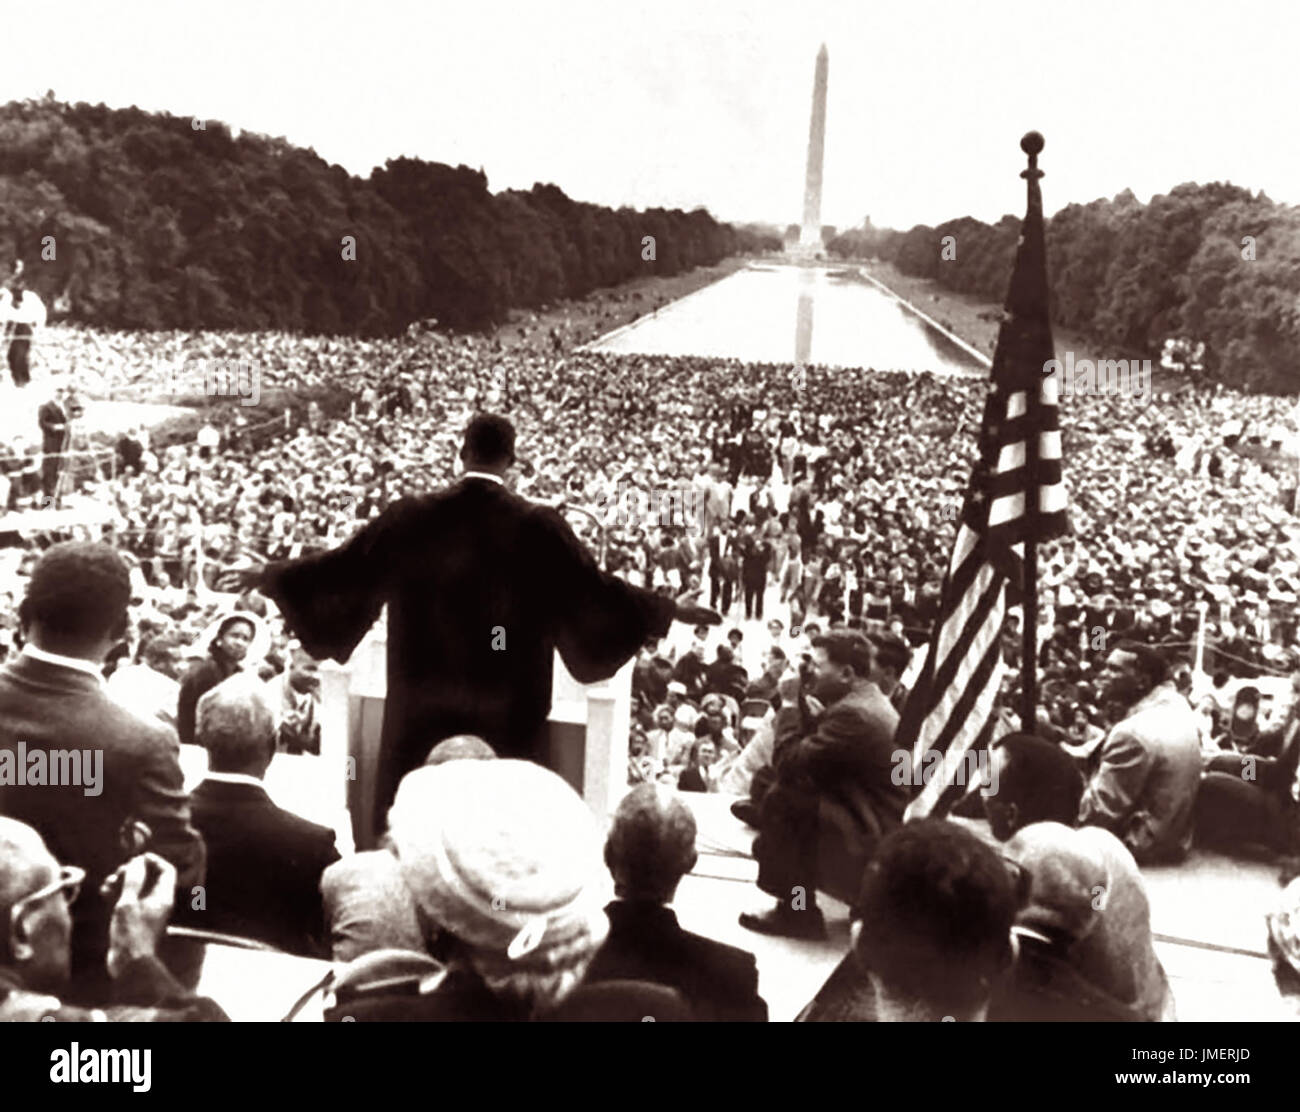 Dr. Martin Luther King Jr. at the Prayer Pilgrimage for Freedom rallly on May 17, 1957 as he delivers his 'Give Us the Ballot' speech from the steps of the Lincoln Memorial in Washington, D.C. Approximately 25,000 were in attendance as Dr. King, the last speaker, gave his first national address. - Stock Image